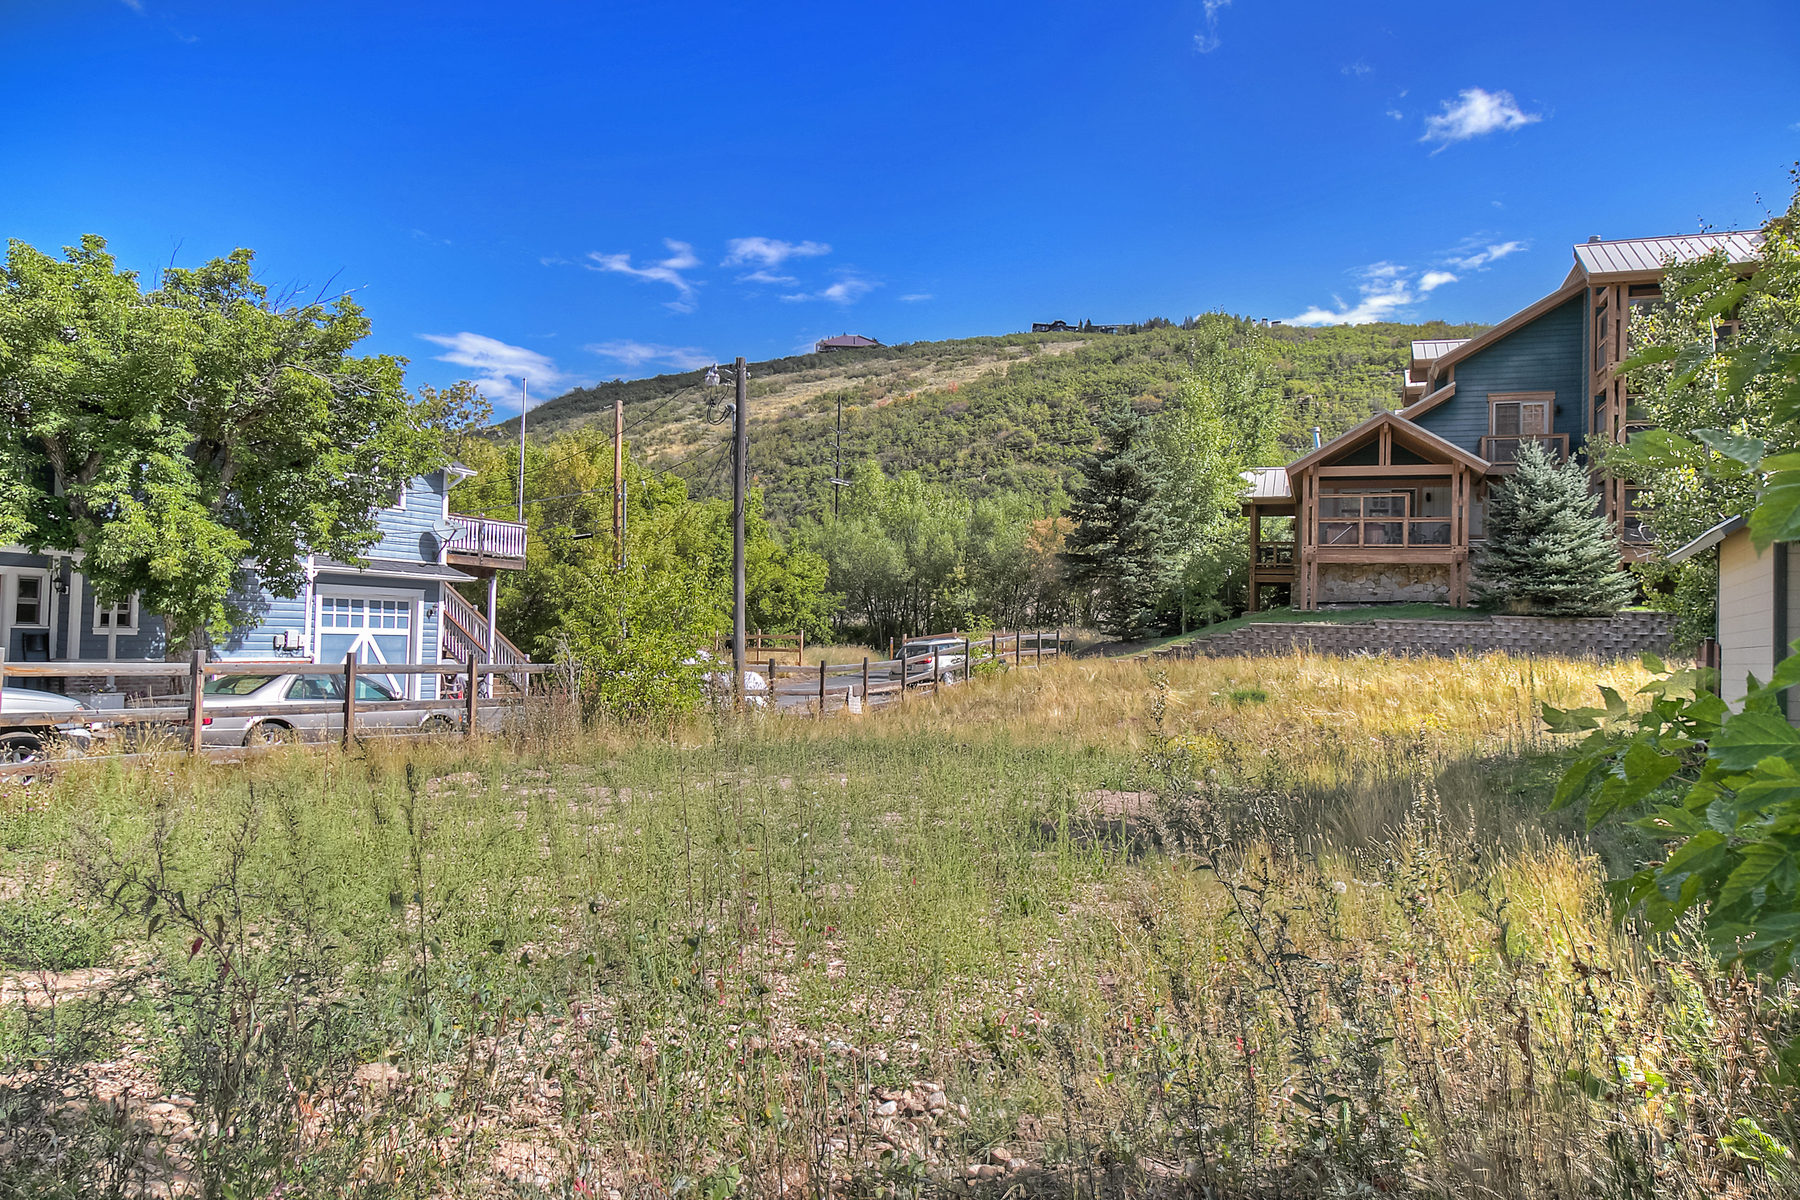 Terreno por un Venta en 3 Lot Development Opportunity 1064 Park Ave Lot 15 & Lot 16 Park City, Utah, 84060 Estados Unidos